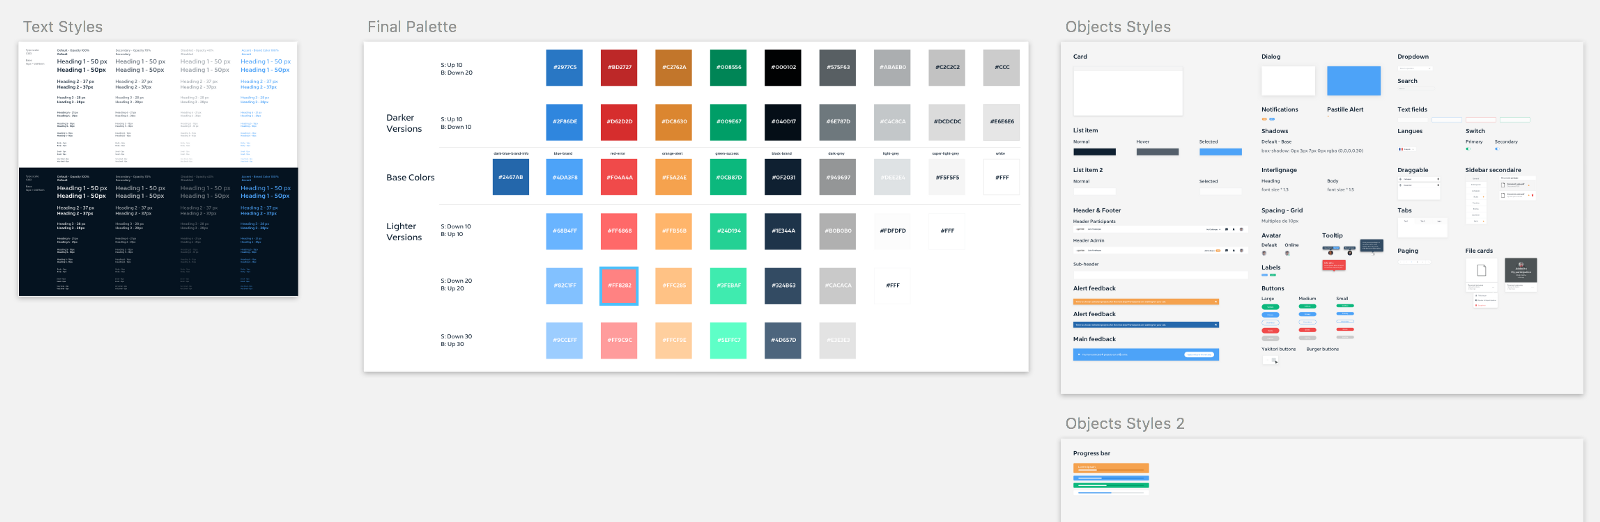 Our first design styleguide